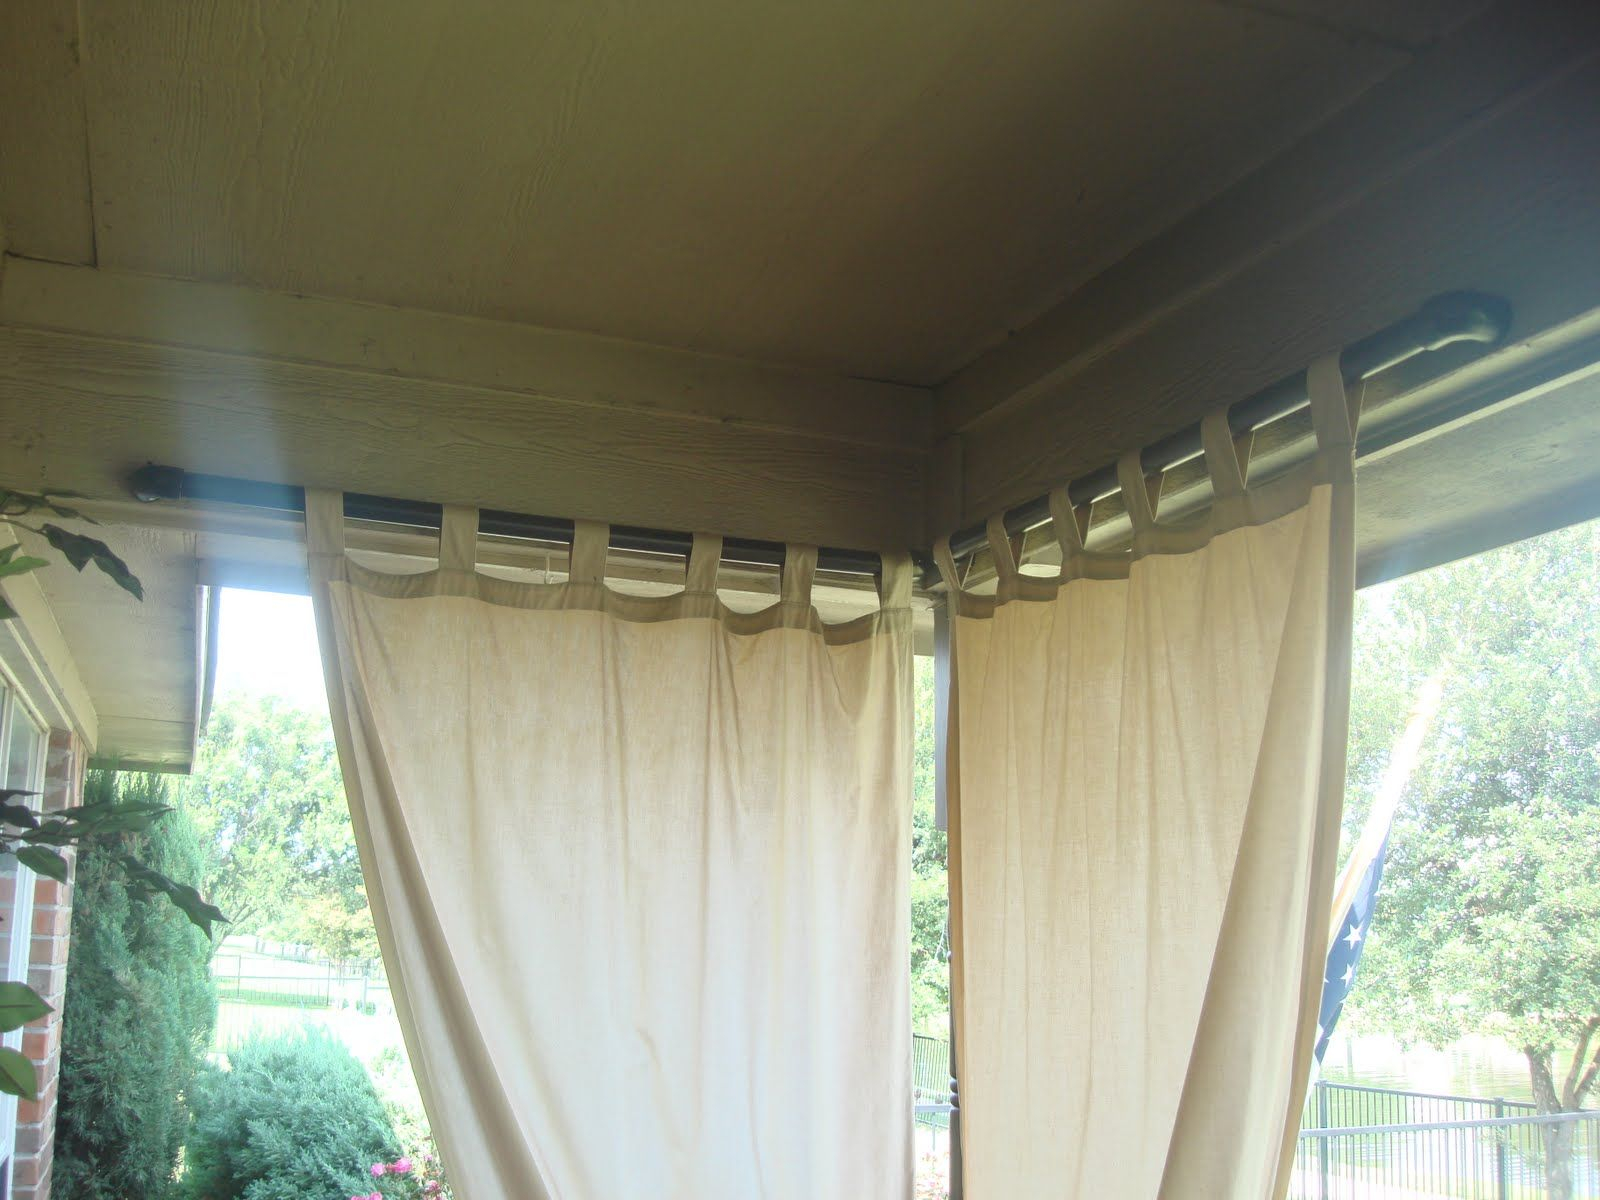 outdoor curtain rod a slot was cut into